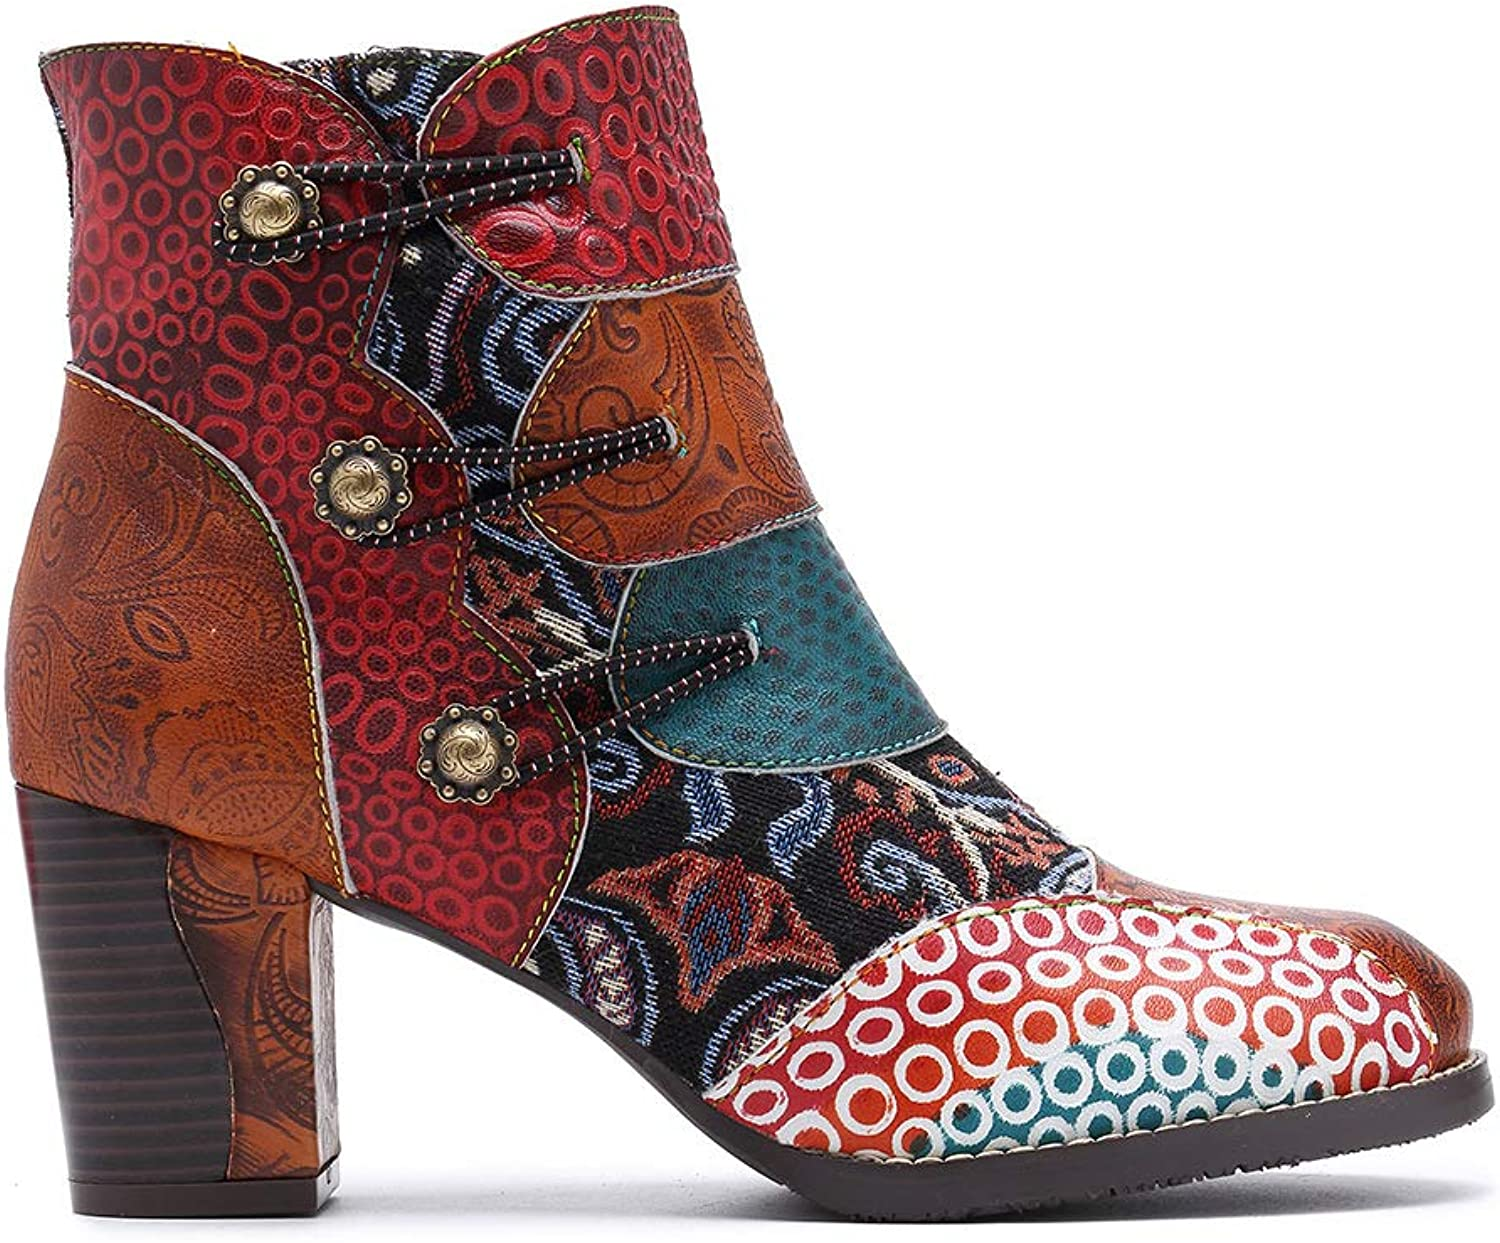 Women's Ankle Boots Casual Oxford Boots, High Block Heel Booties Fashion National Style Warm Boot with Bohemian Splicing Pattern